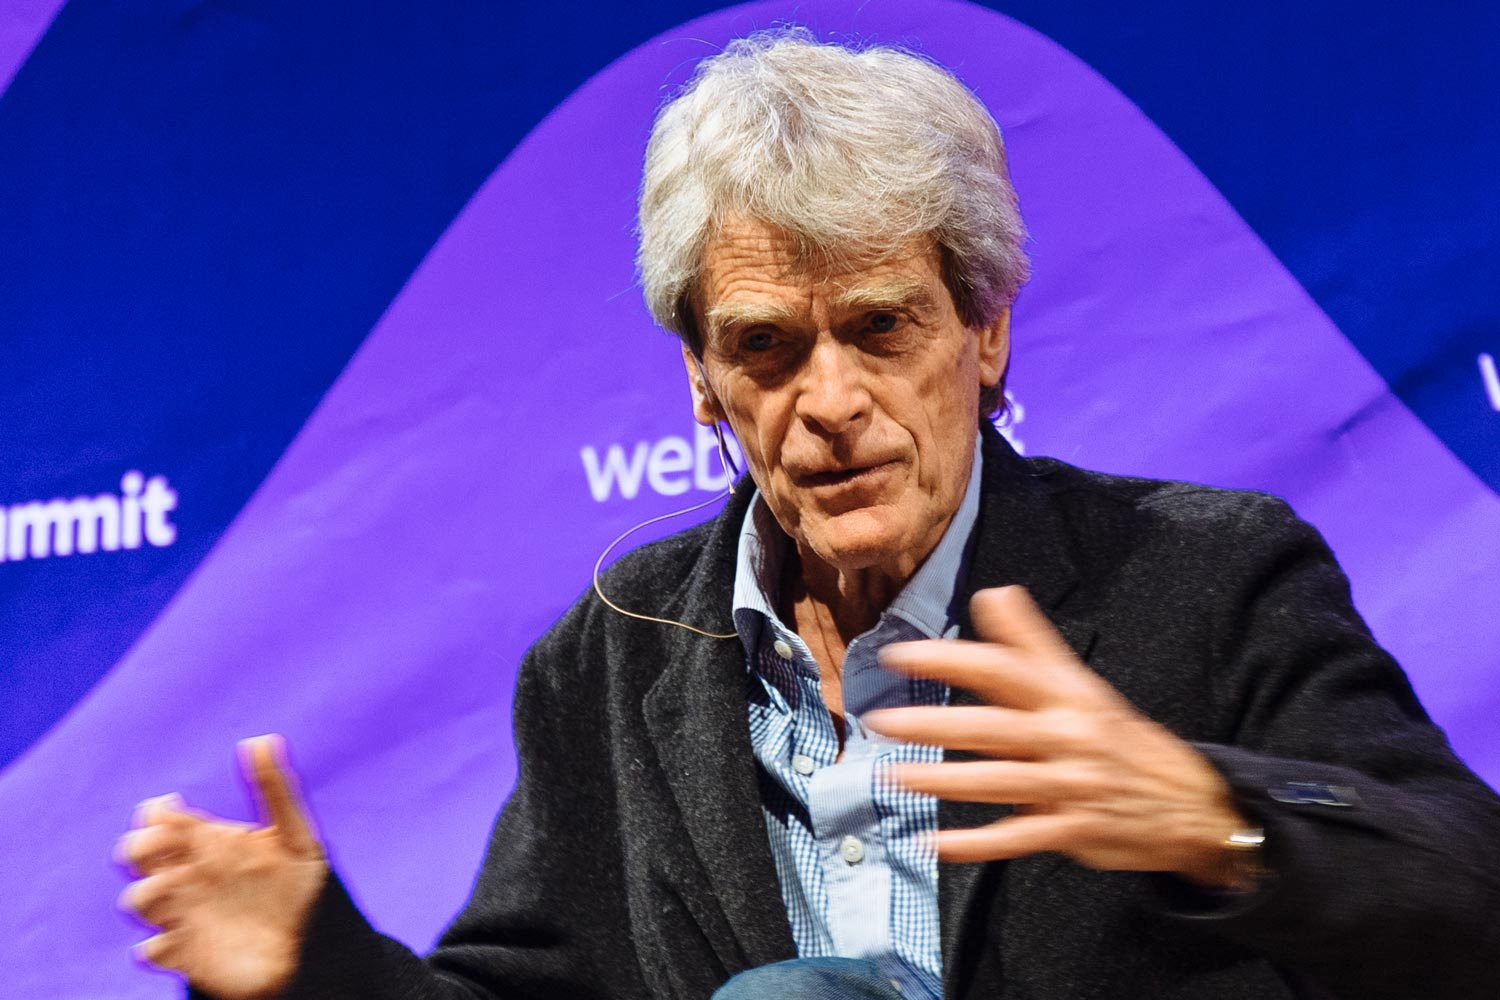 BBH founder John Hegarty signs on as chairman of Genie, a creative matching service using artificial intelligence